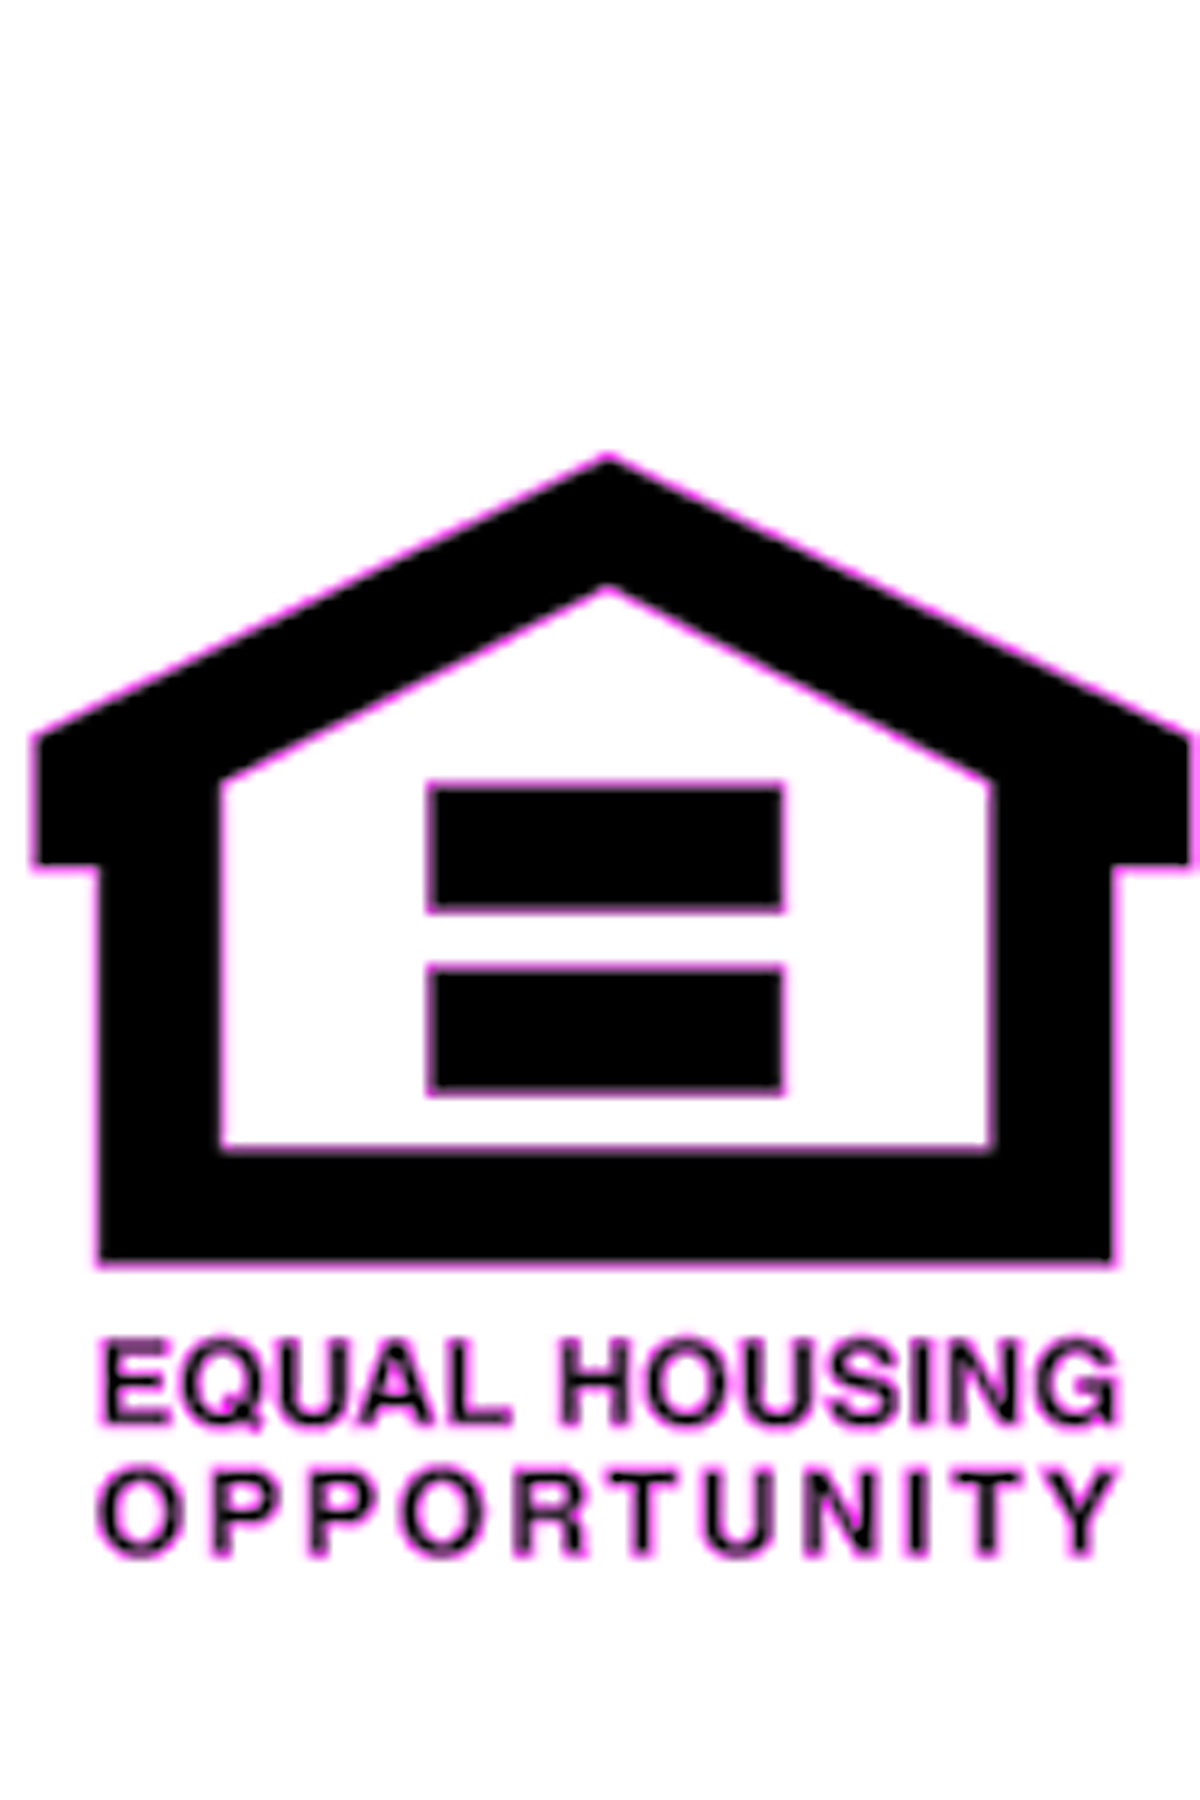 equal opportunity school Create an equal opportunities policy template to ensure equality of opportunity for all staff show staff that you are a responsible employer with a clear and fair equality policy.